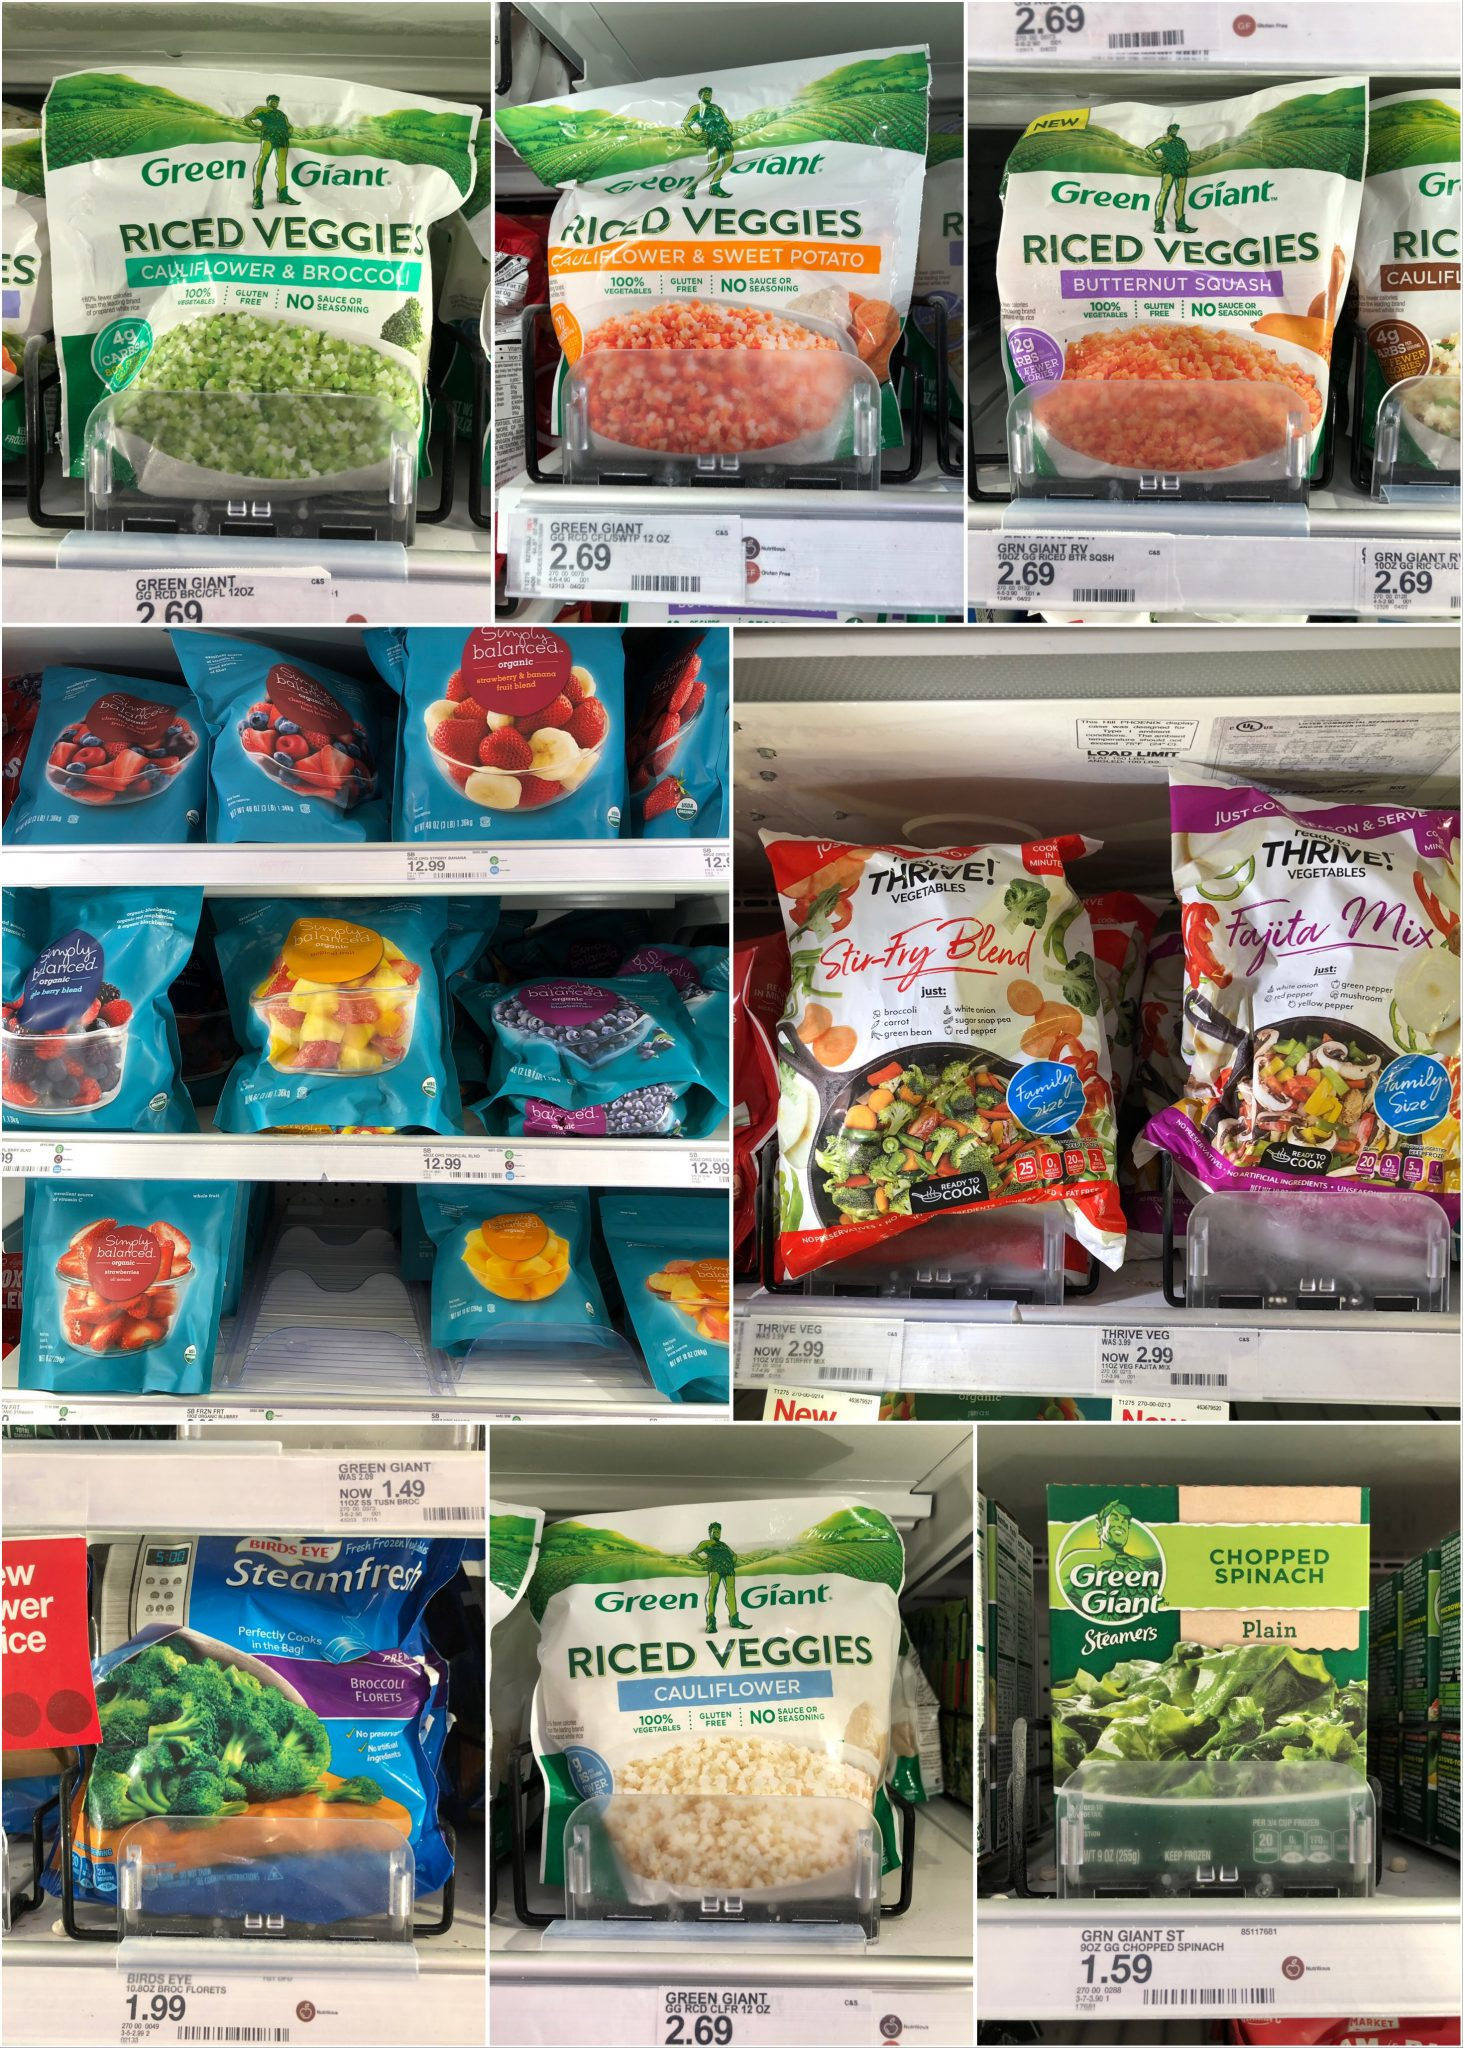 A collage of bagged, frozen vegetables and fruits.